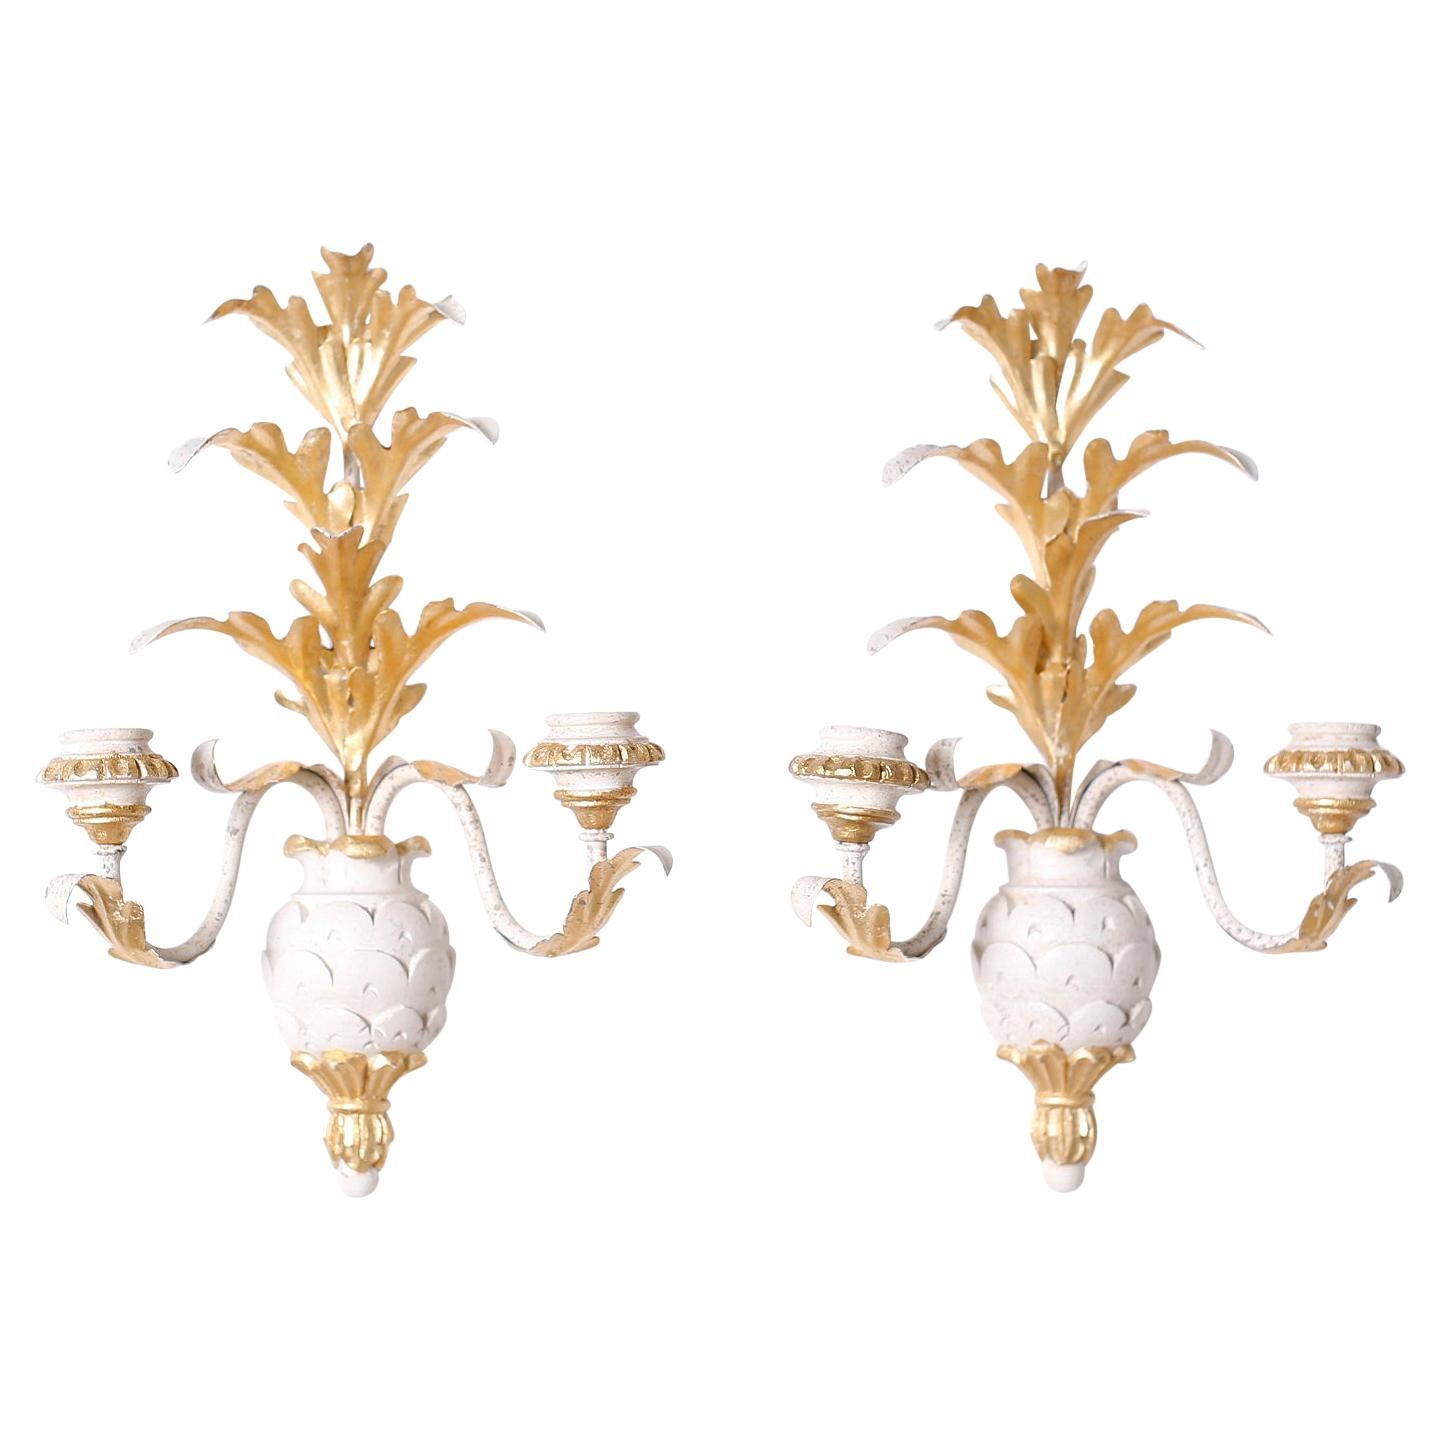 Pair of Italian Wood and Gilt Metal Pineapple Wall Sconces